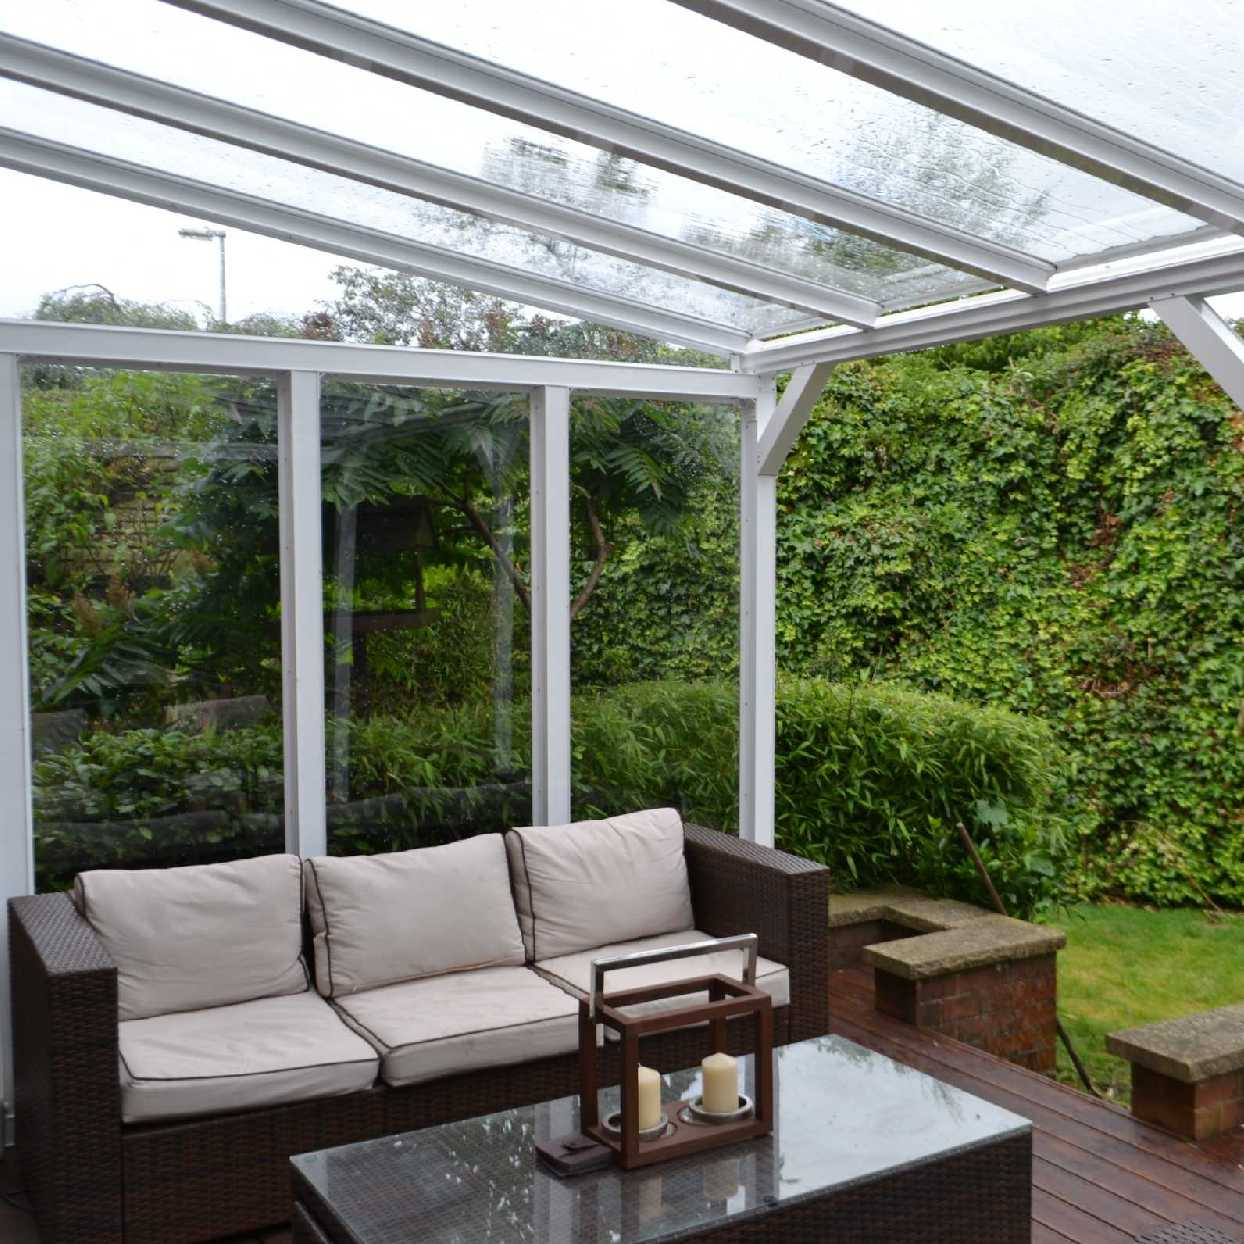 Omega Smart Lean-To Canopy UNGLAZED for 6mm Glazing - 6.3m (W) x 2.5m (P), (4) Supporting Posts